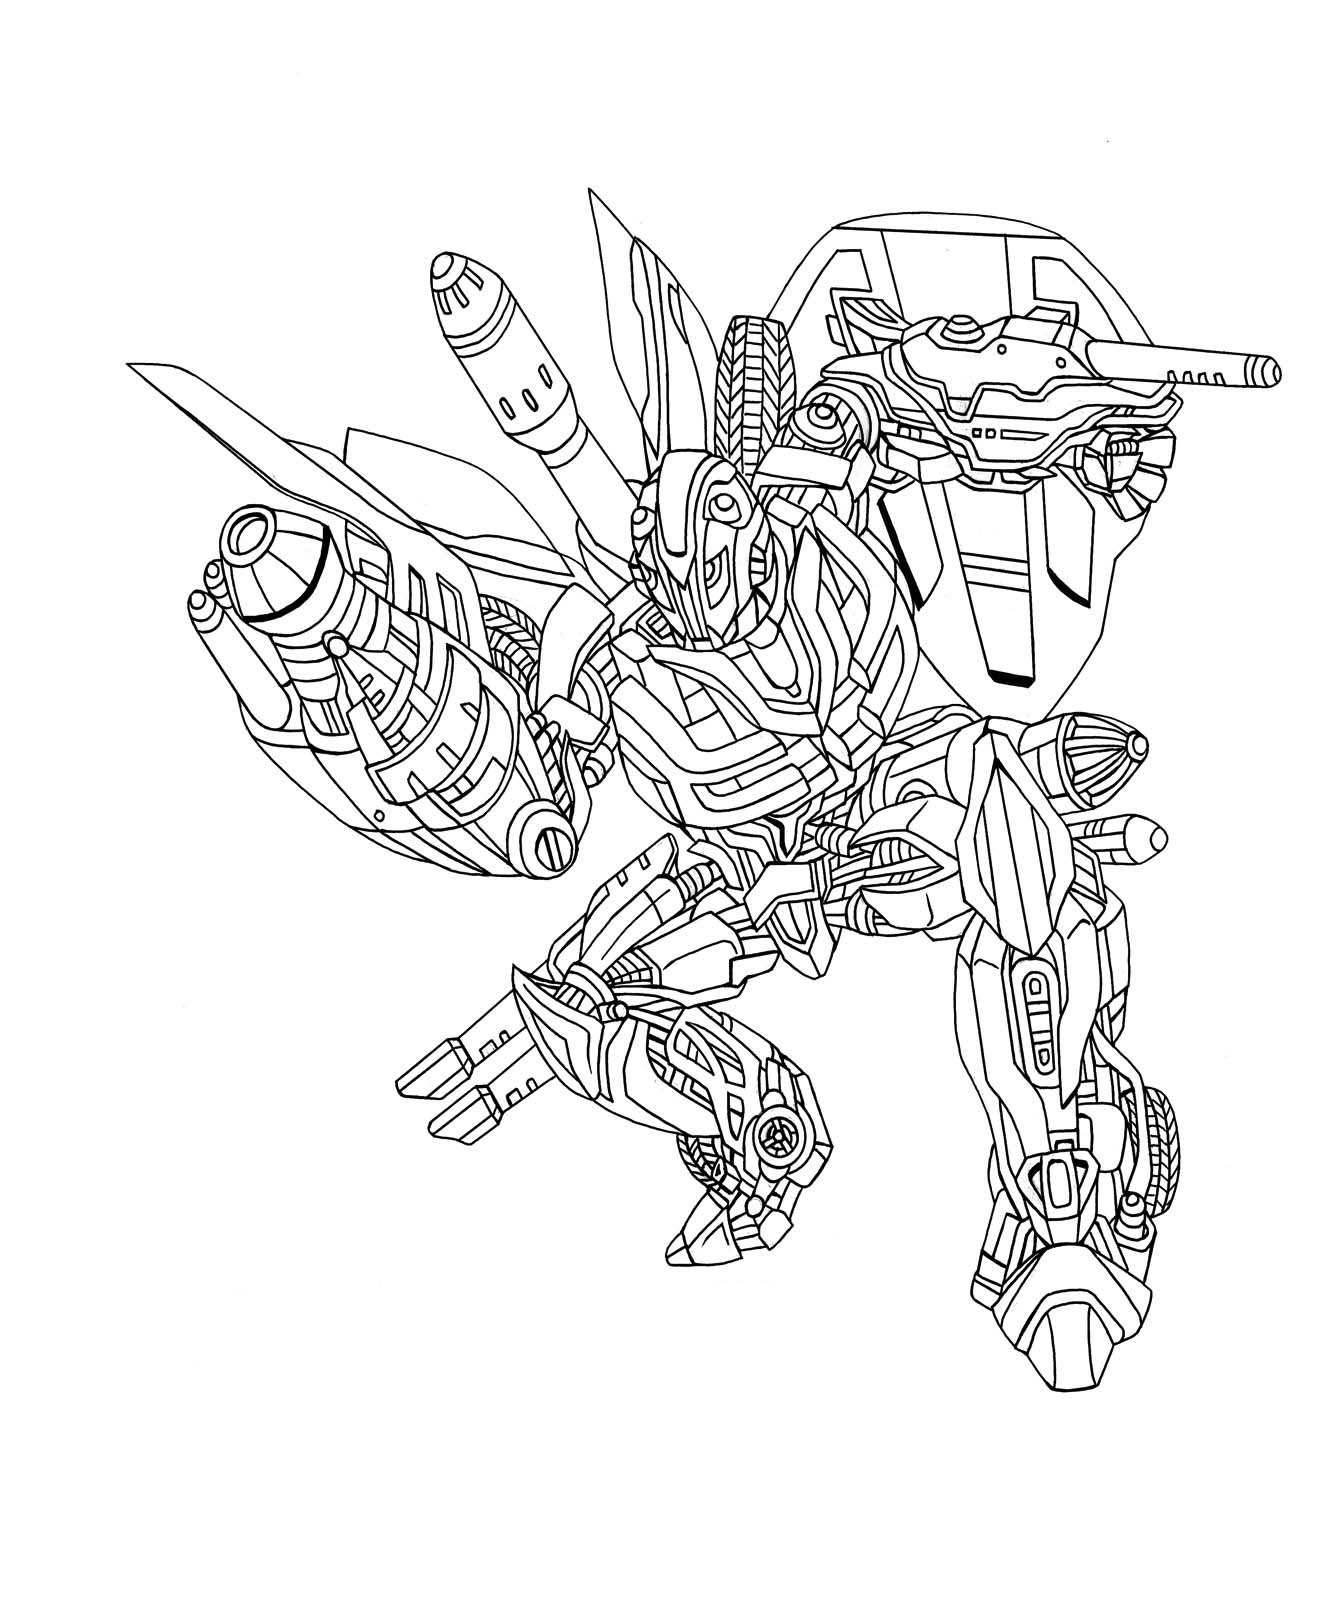 bumblebee transformer coloring pictures bumblebee coloring pages to download and print for free pictures transformer bumblebee coloring